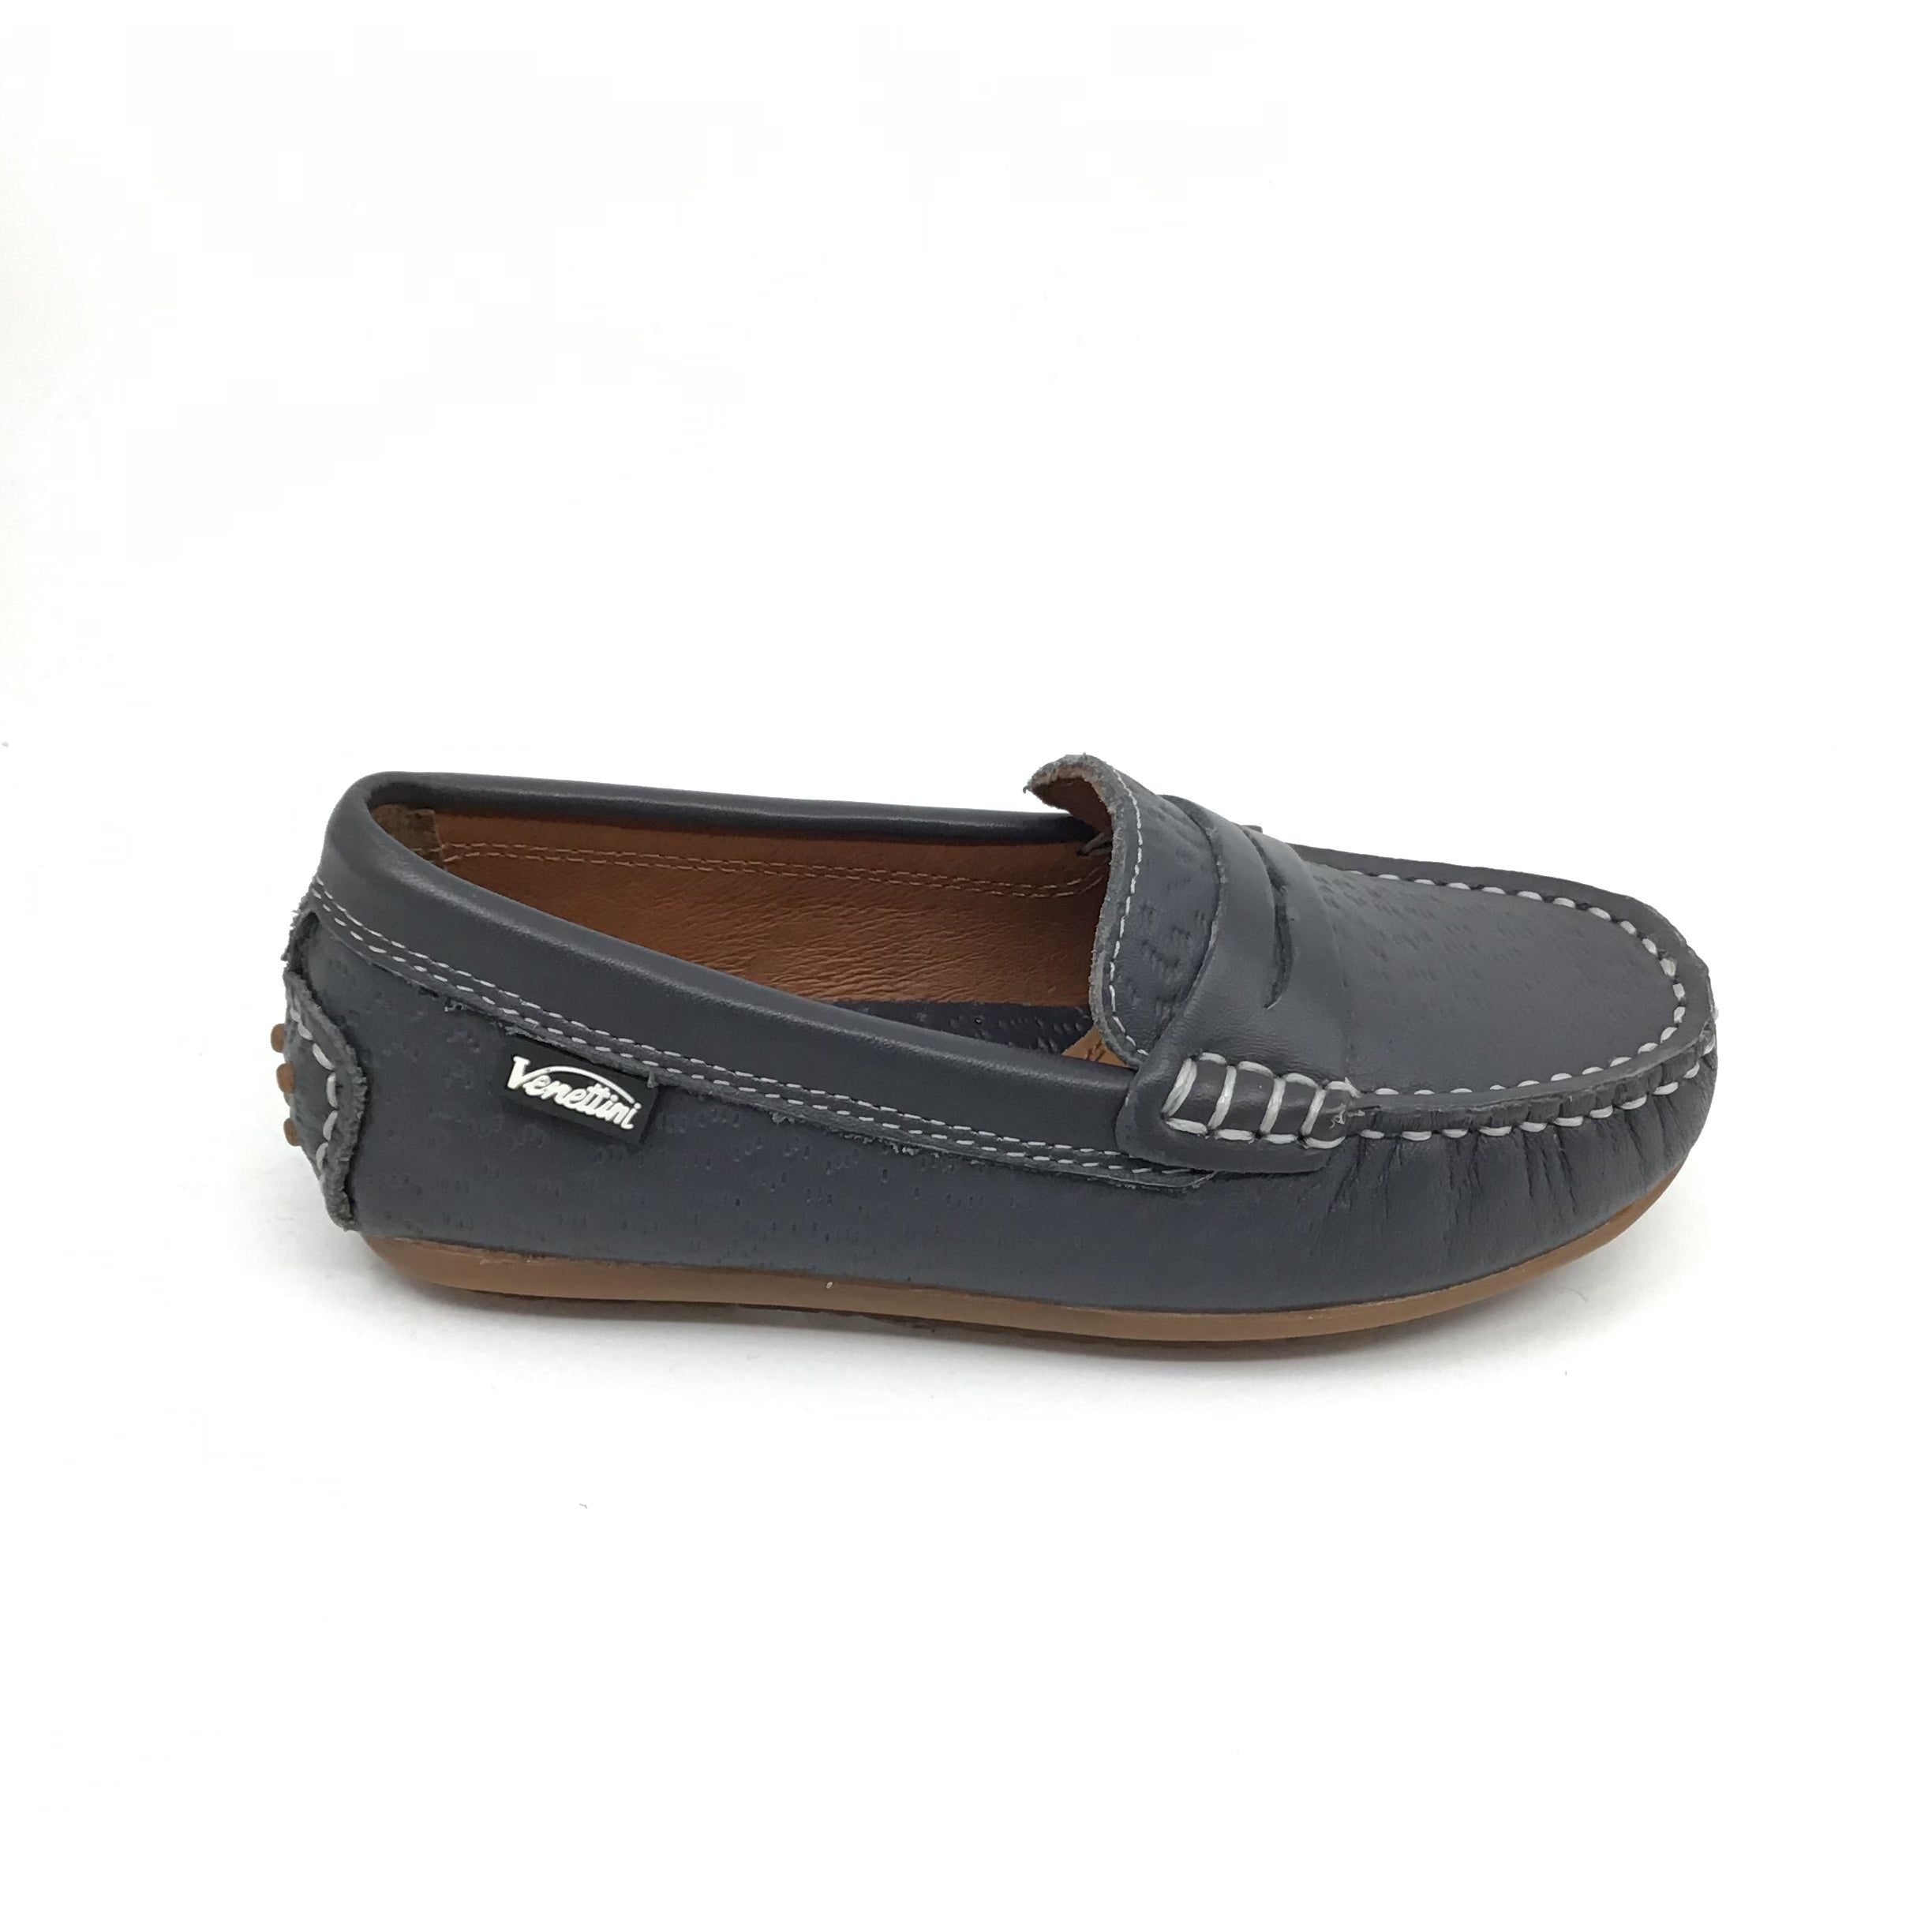 Venettini Gray Textured Penny Loafer